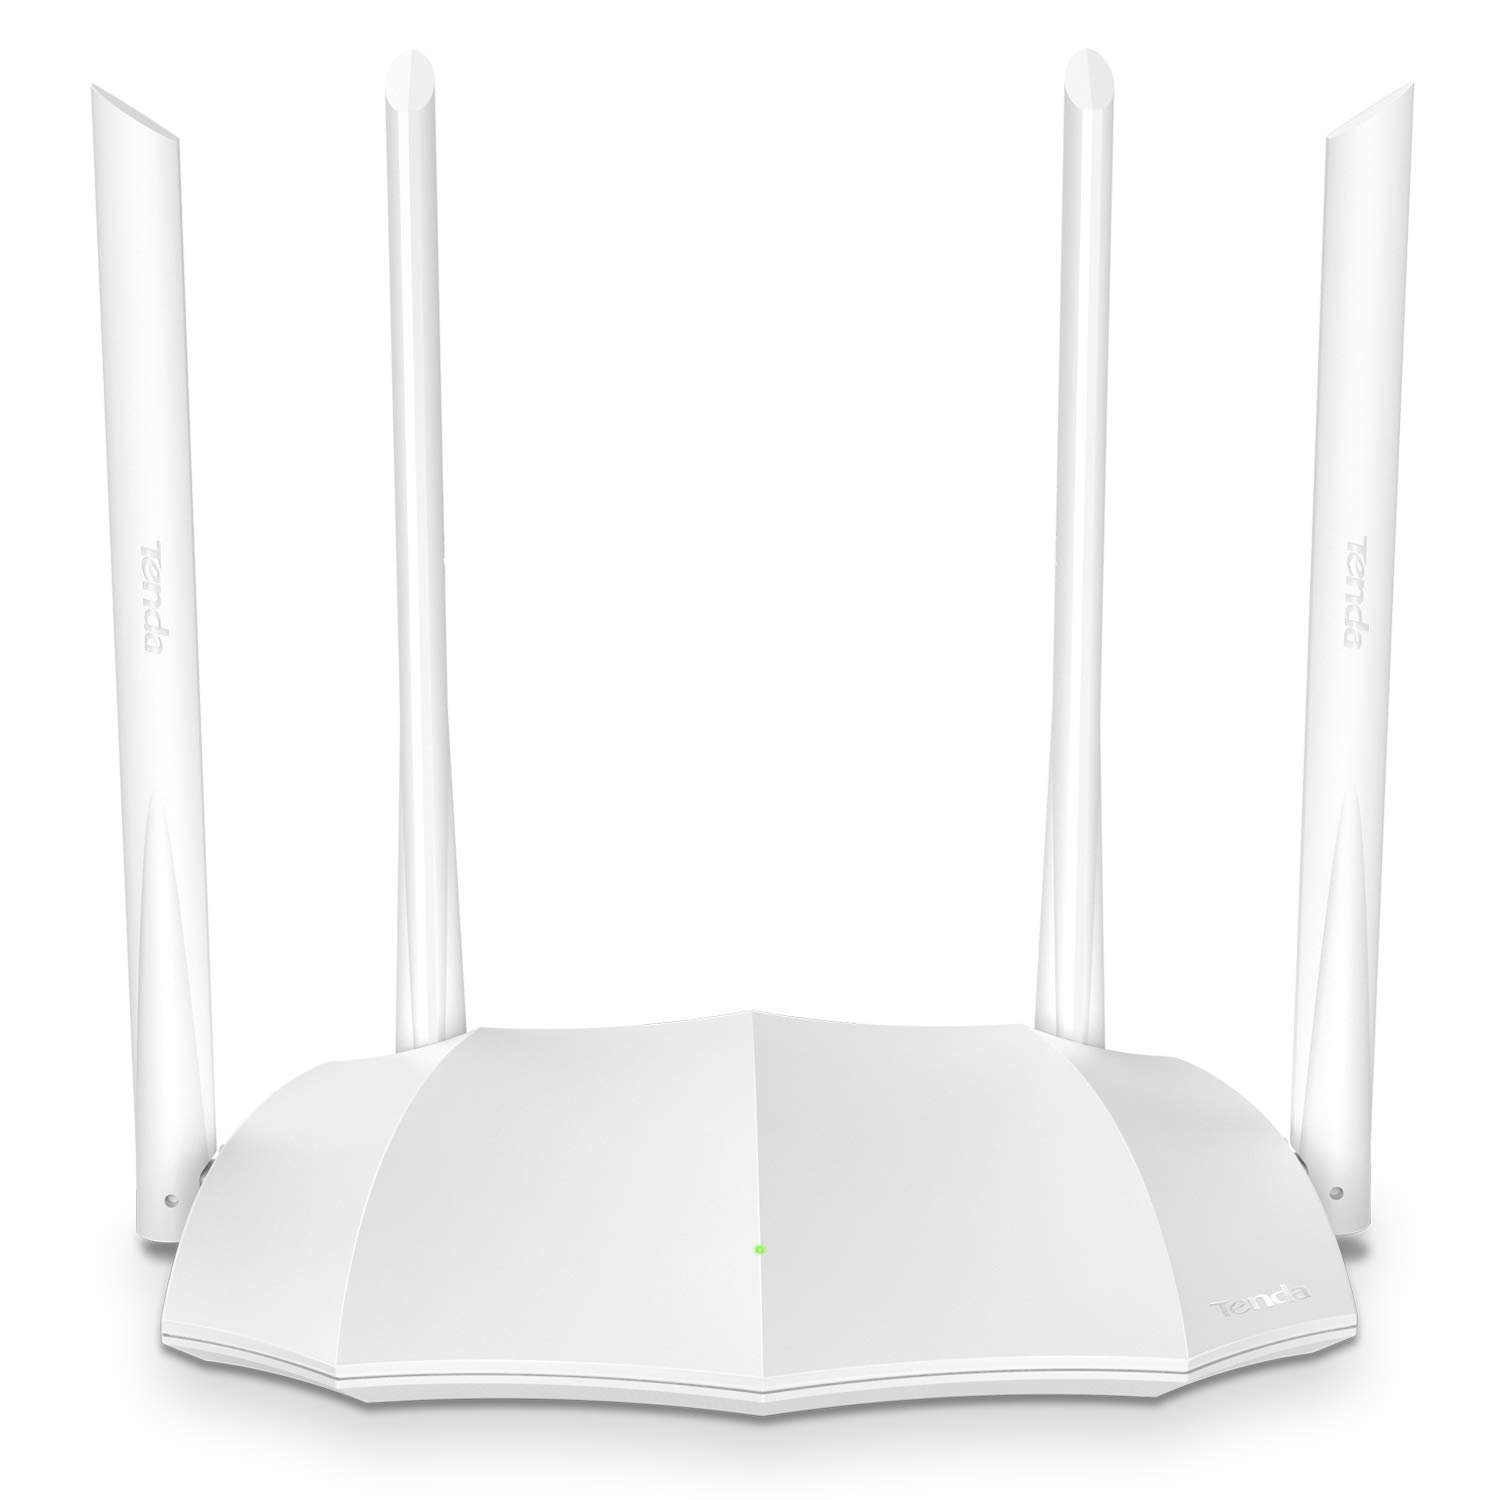 Top 10 Best Router for Home under 2000 in 2021